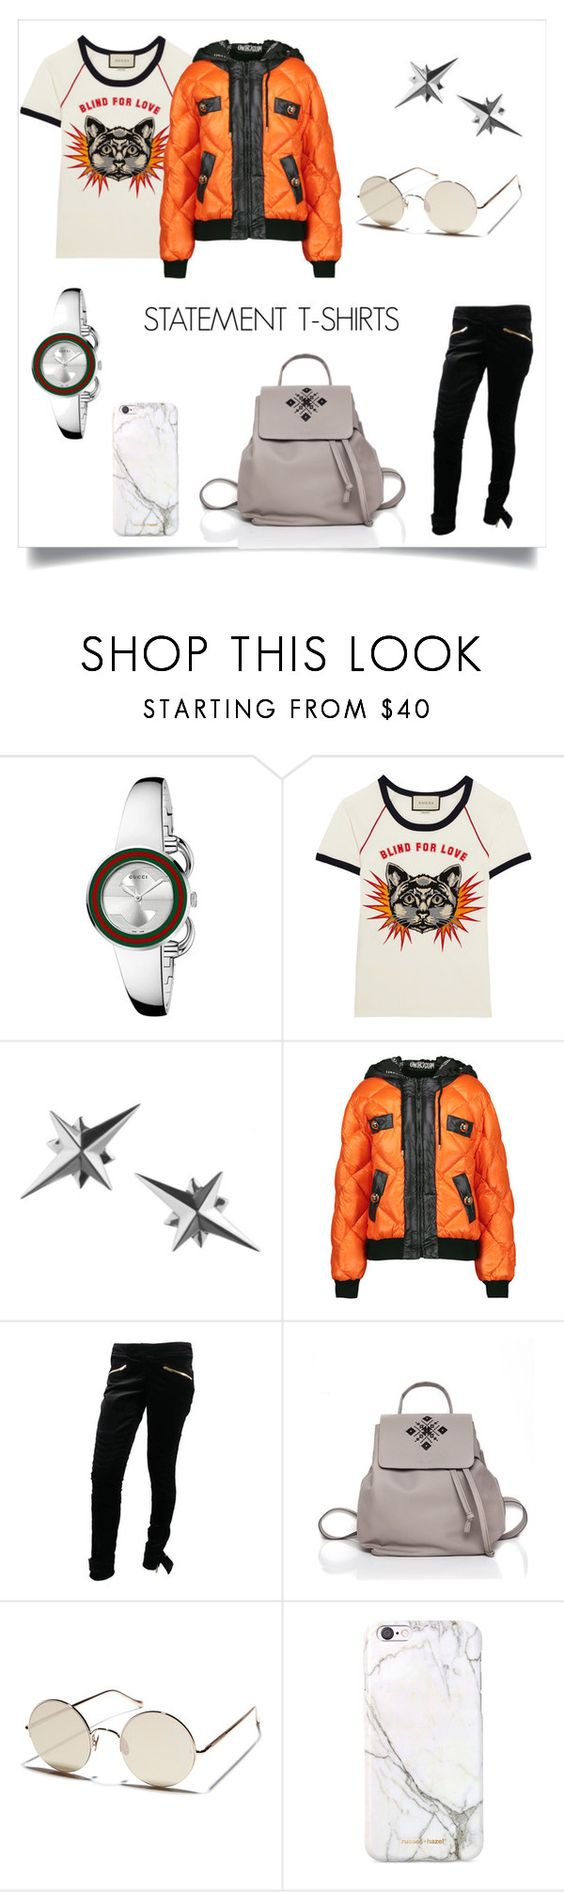 """""""Statement T-shirts"""" by iutta on Polyvore featuring Gucci, Tessa Packard, Moschino, Sunday Somewhere, russell+hazel, StreetStyle, Leather, backpack, embroidered and joyofwearingiutta"""